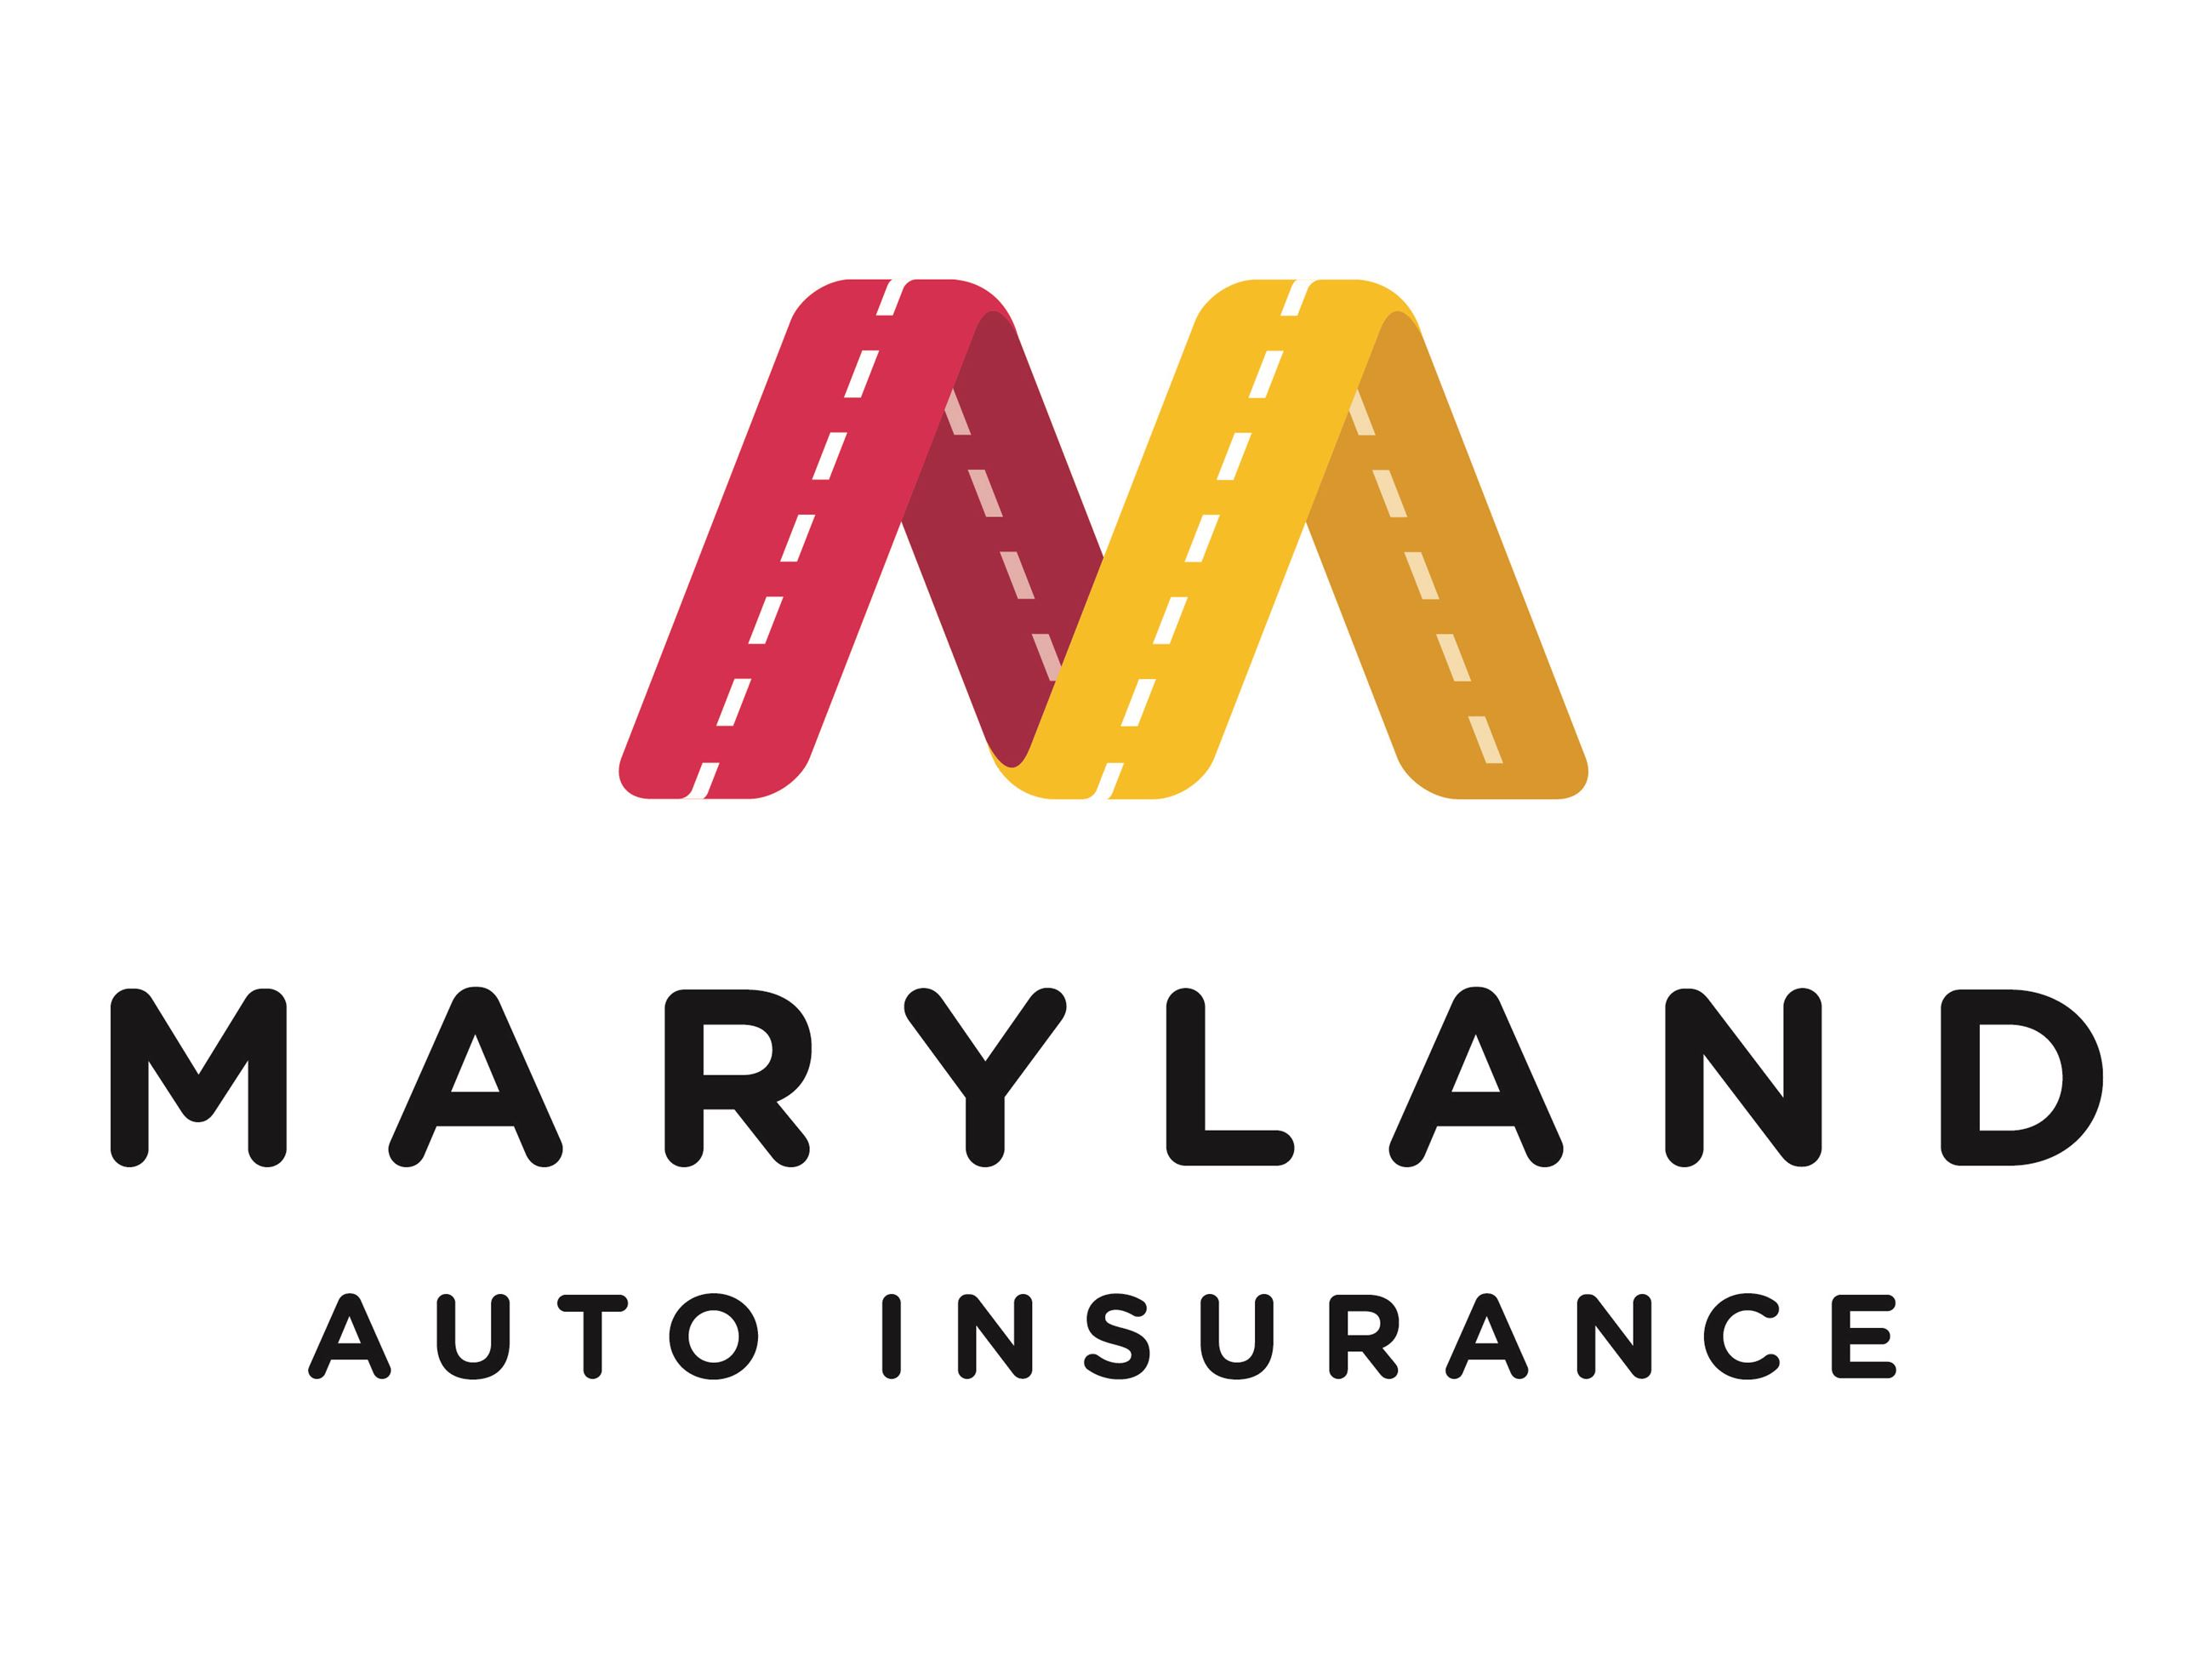 Logo for Maryland Auto Insurance with a large letter M written in red and yellow looking like a road